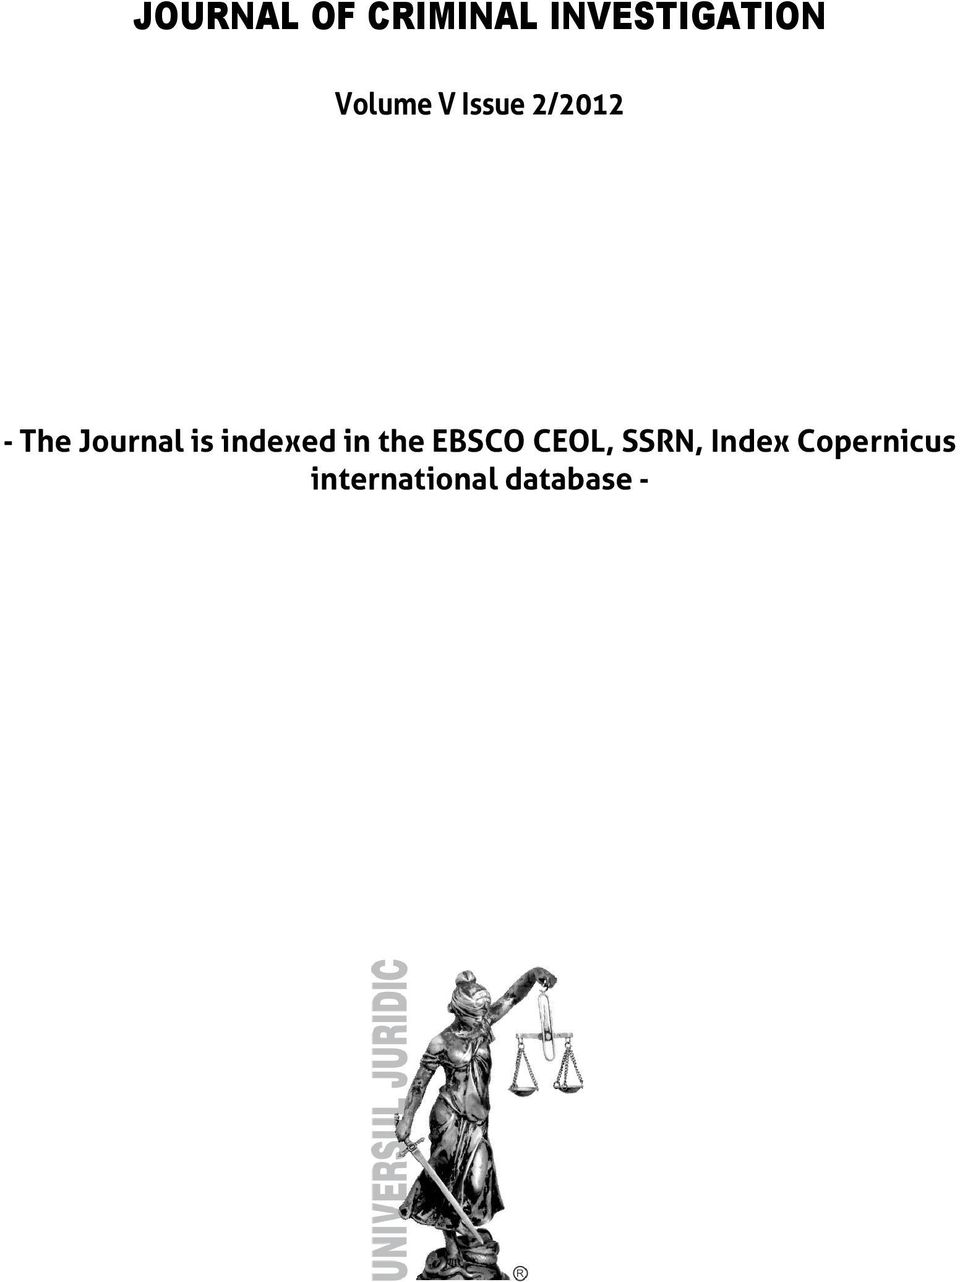 The Journal is indexed in the EBSCO CEOL,